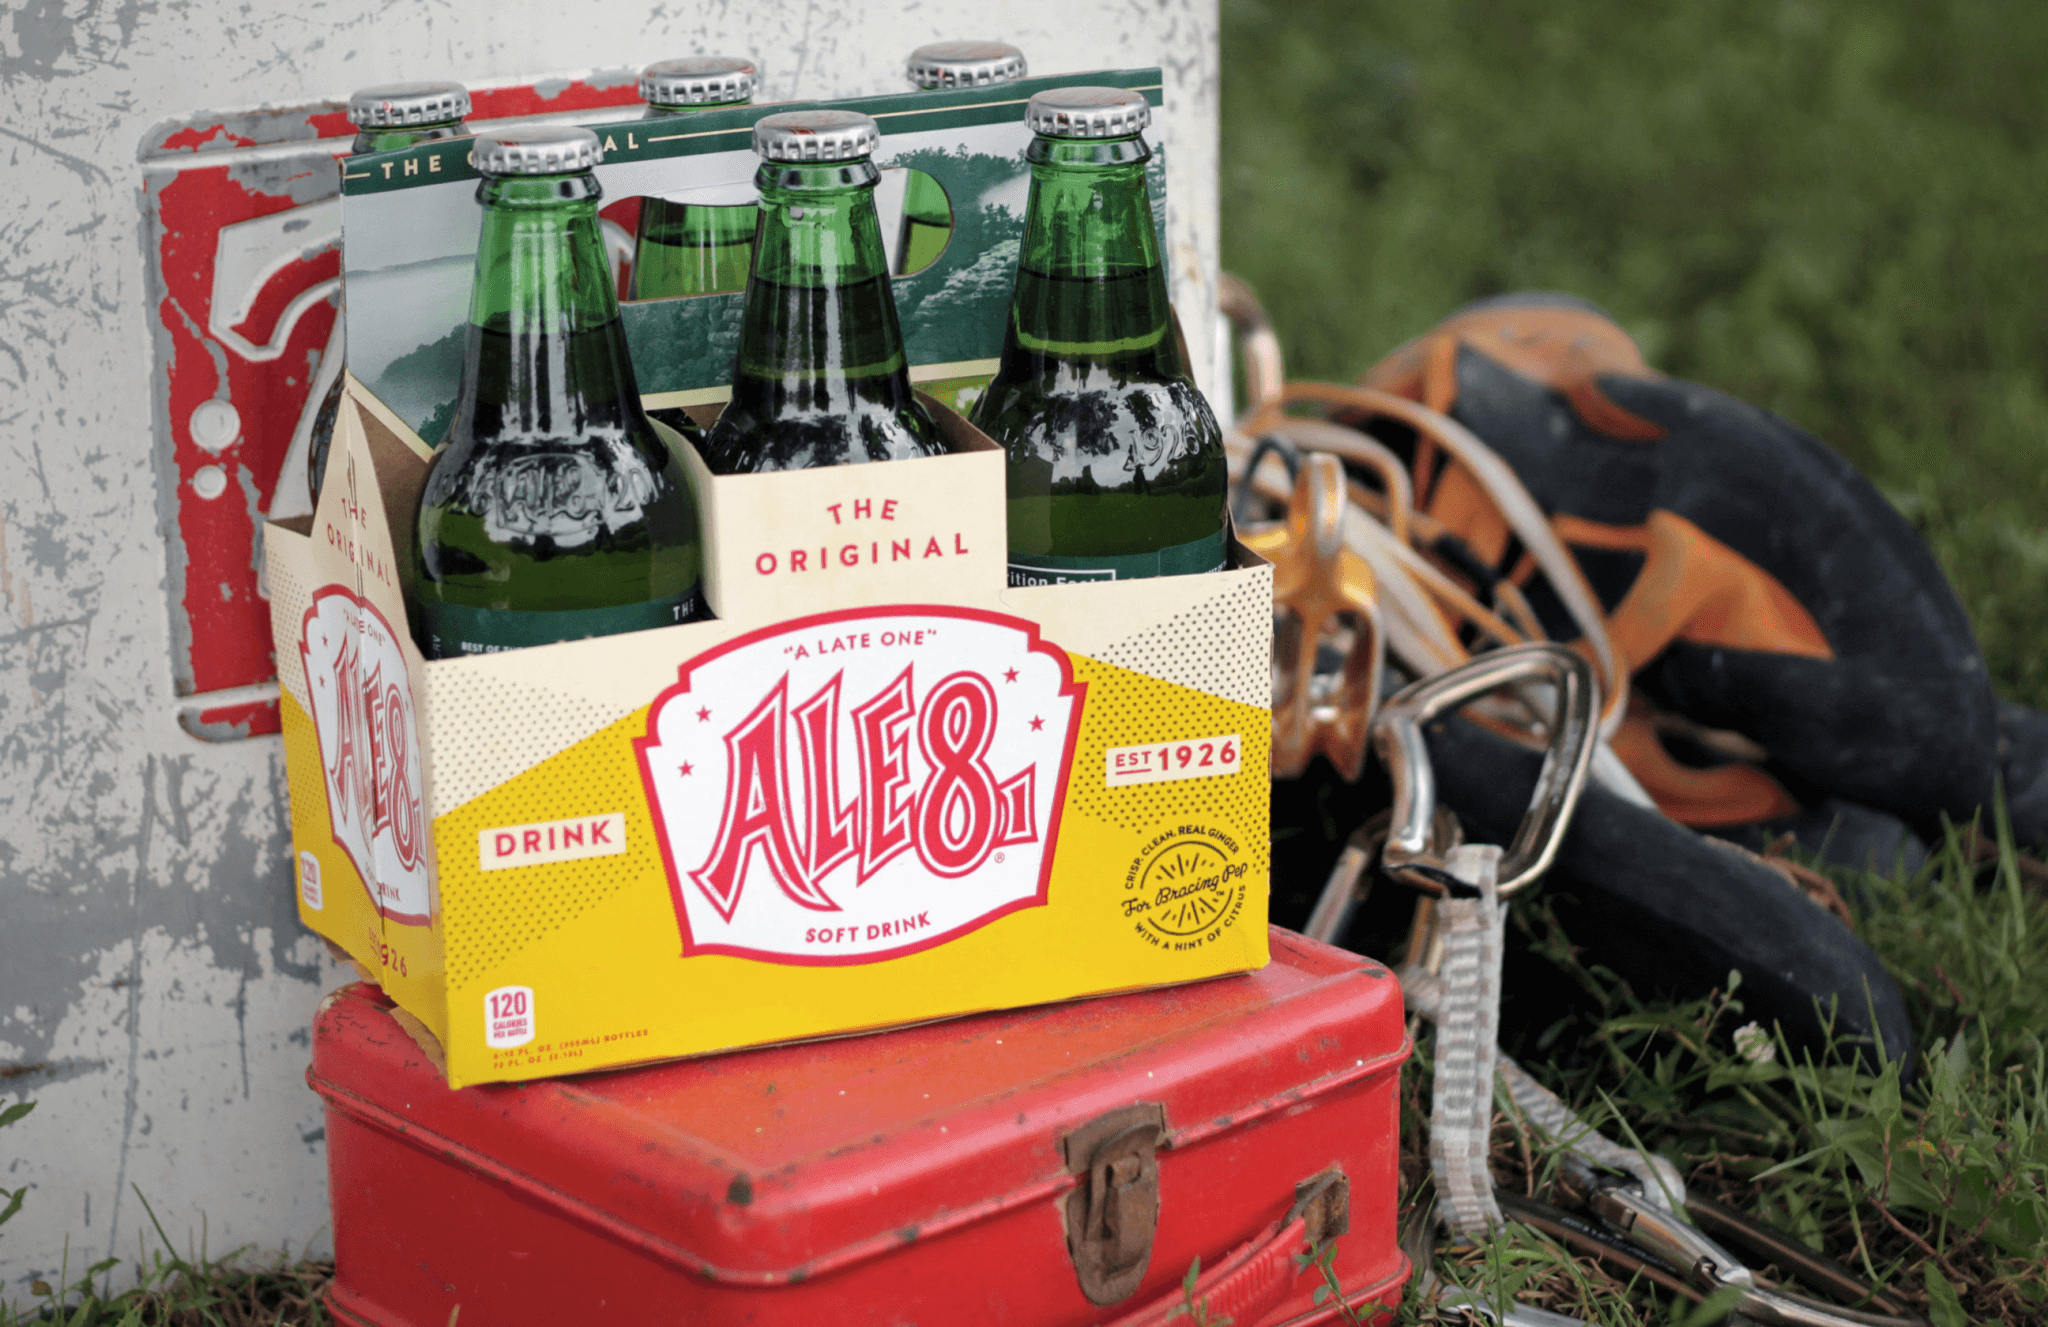 Ale-8 glass bottle package camping